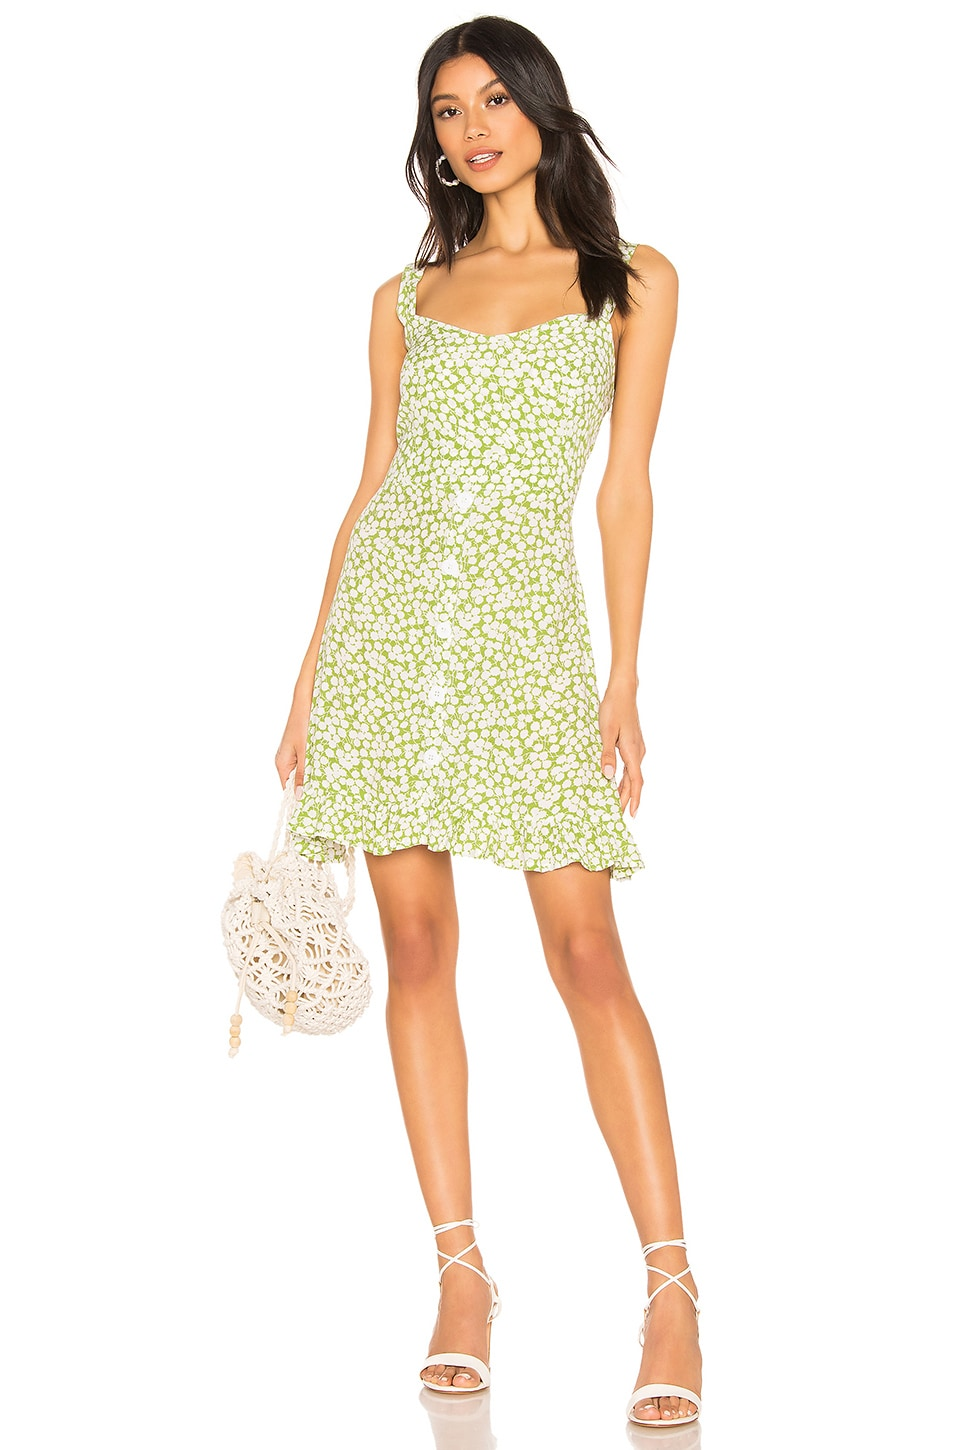 FAITHFULL THE BRAND Lou Lou Mini Dress in Avocado Green Bella Floral